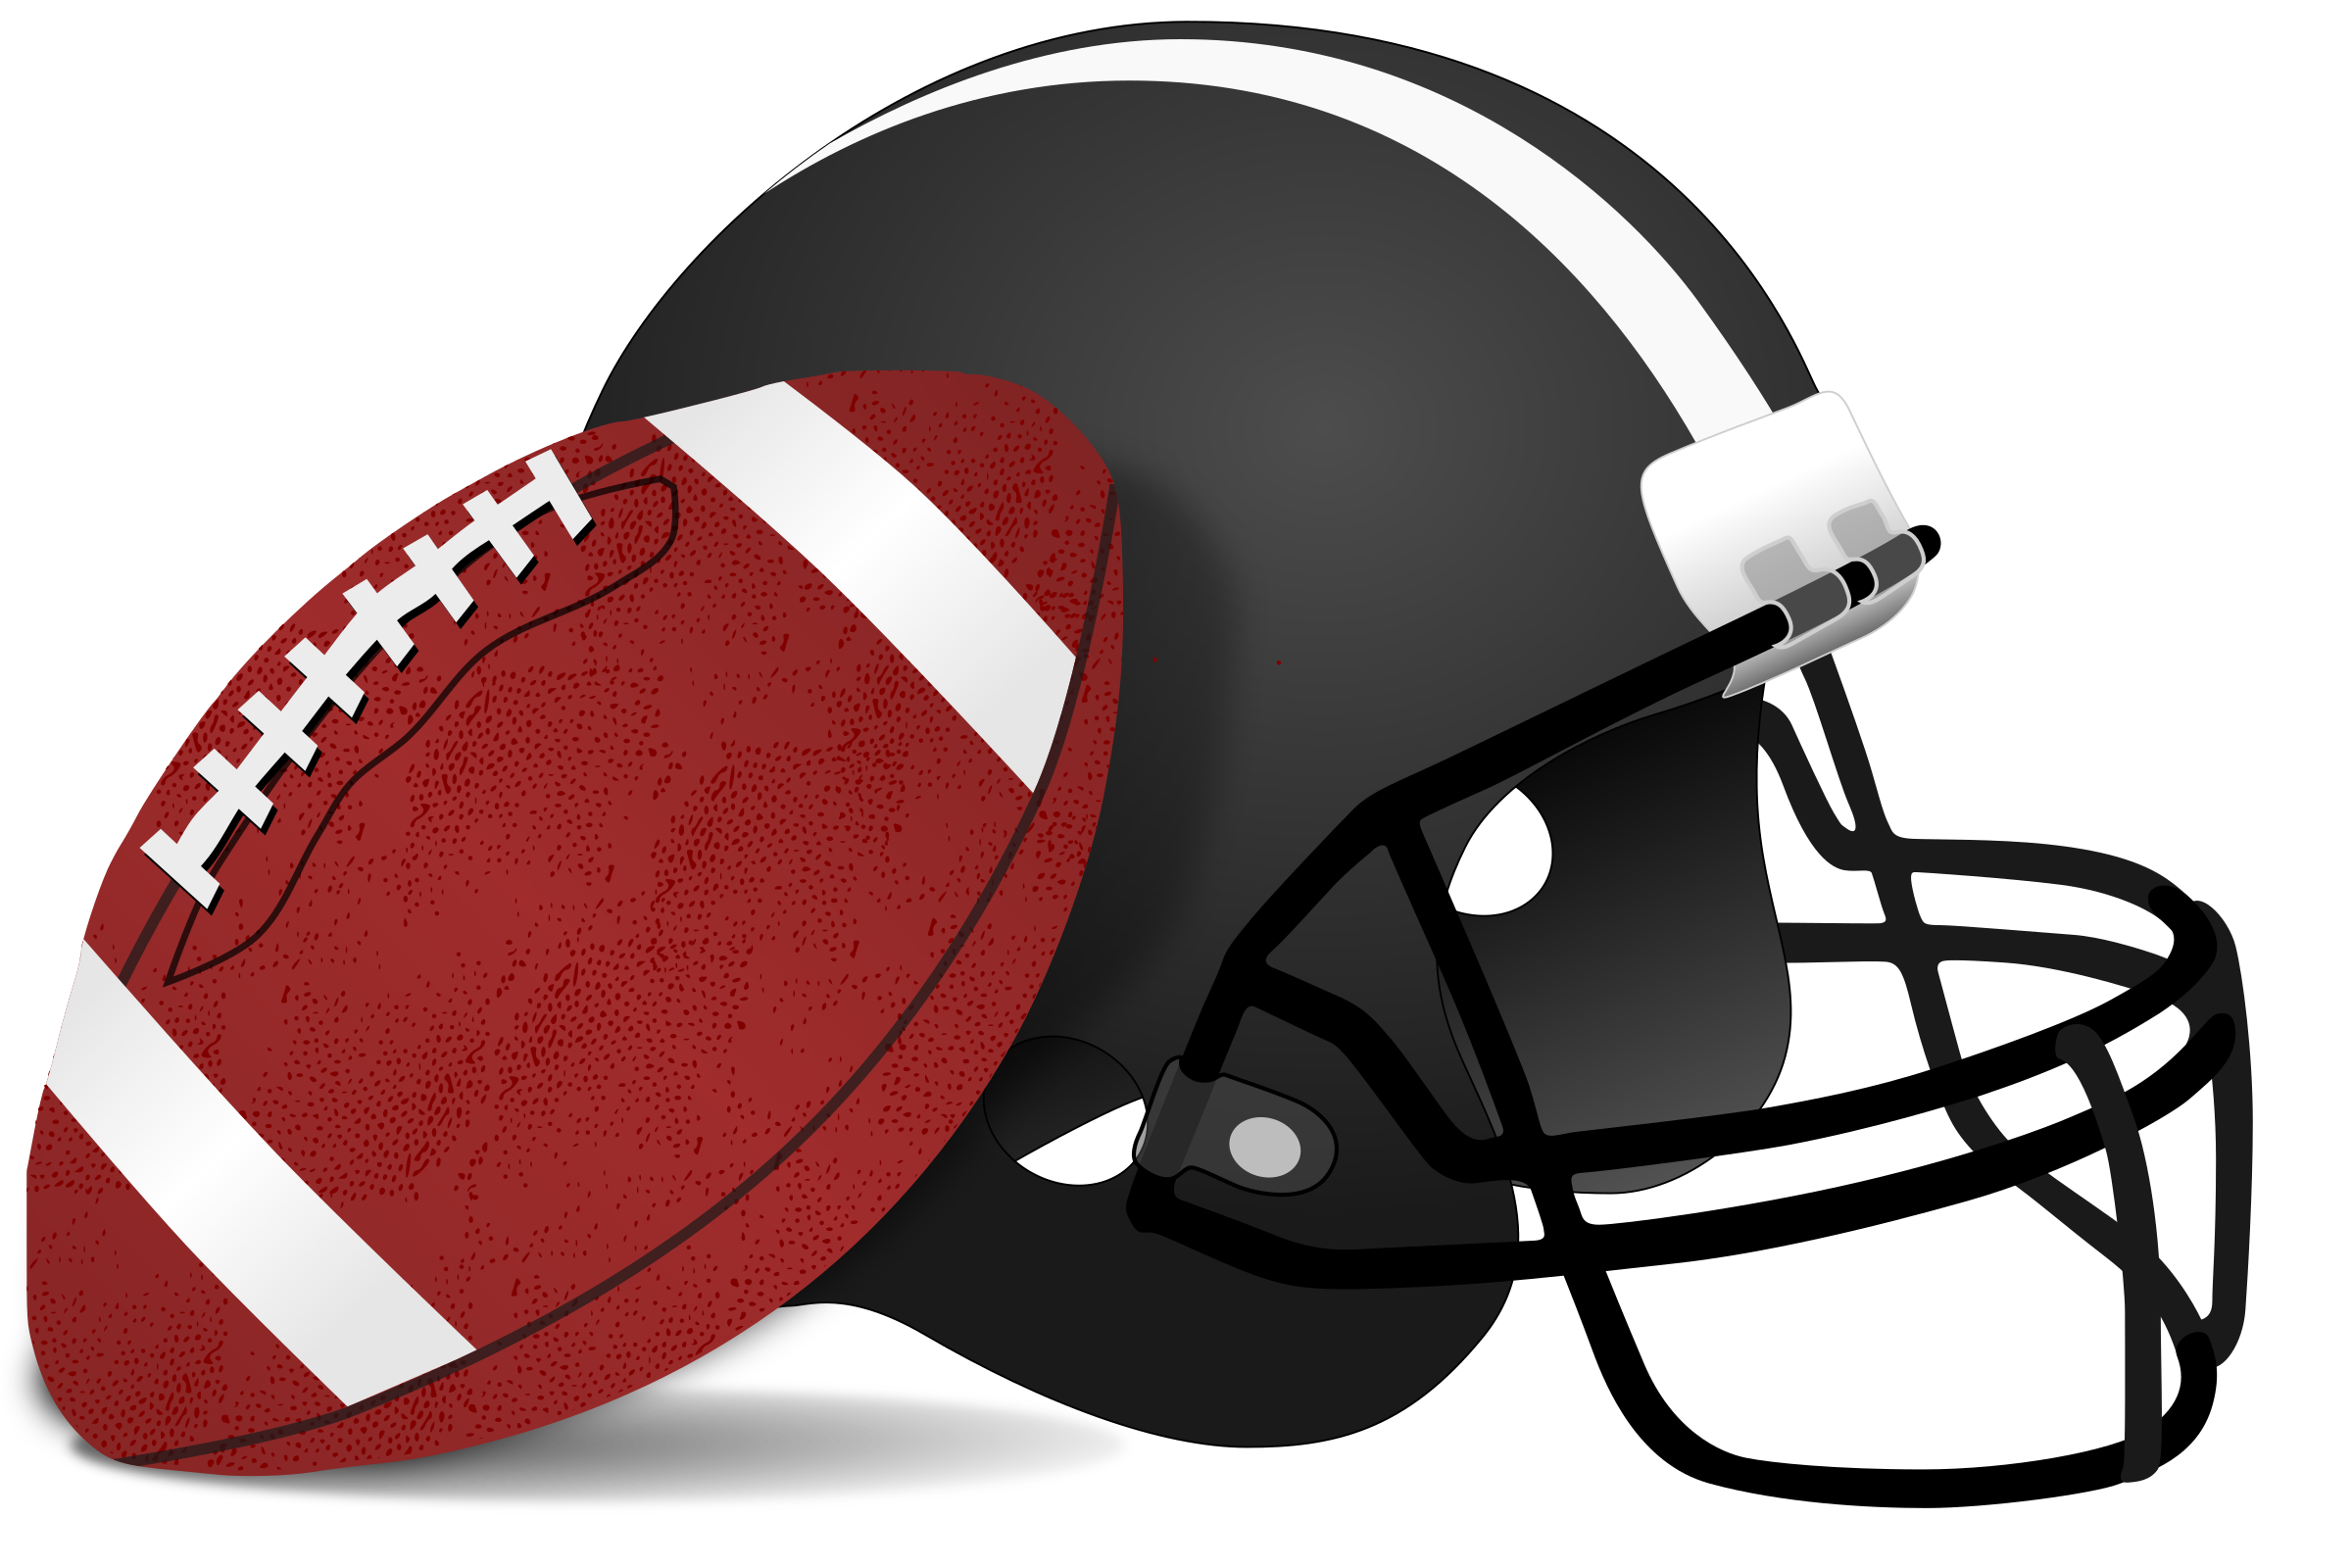 Leather football helmet clipart banner download Clipart - American Football and Helmet banner download